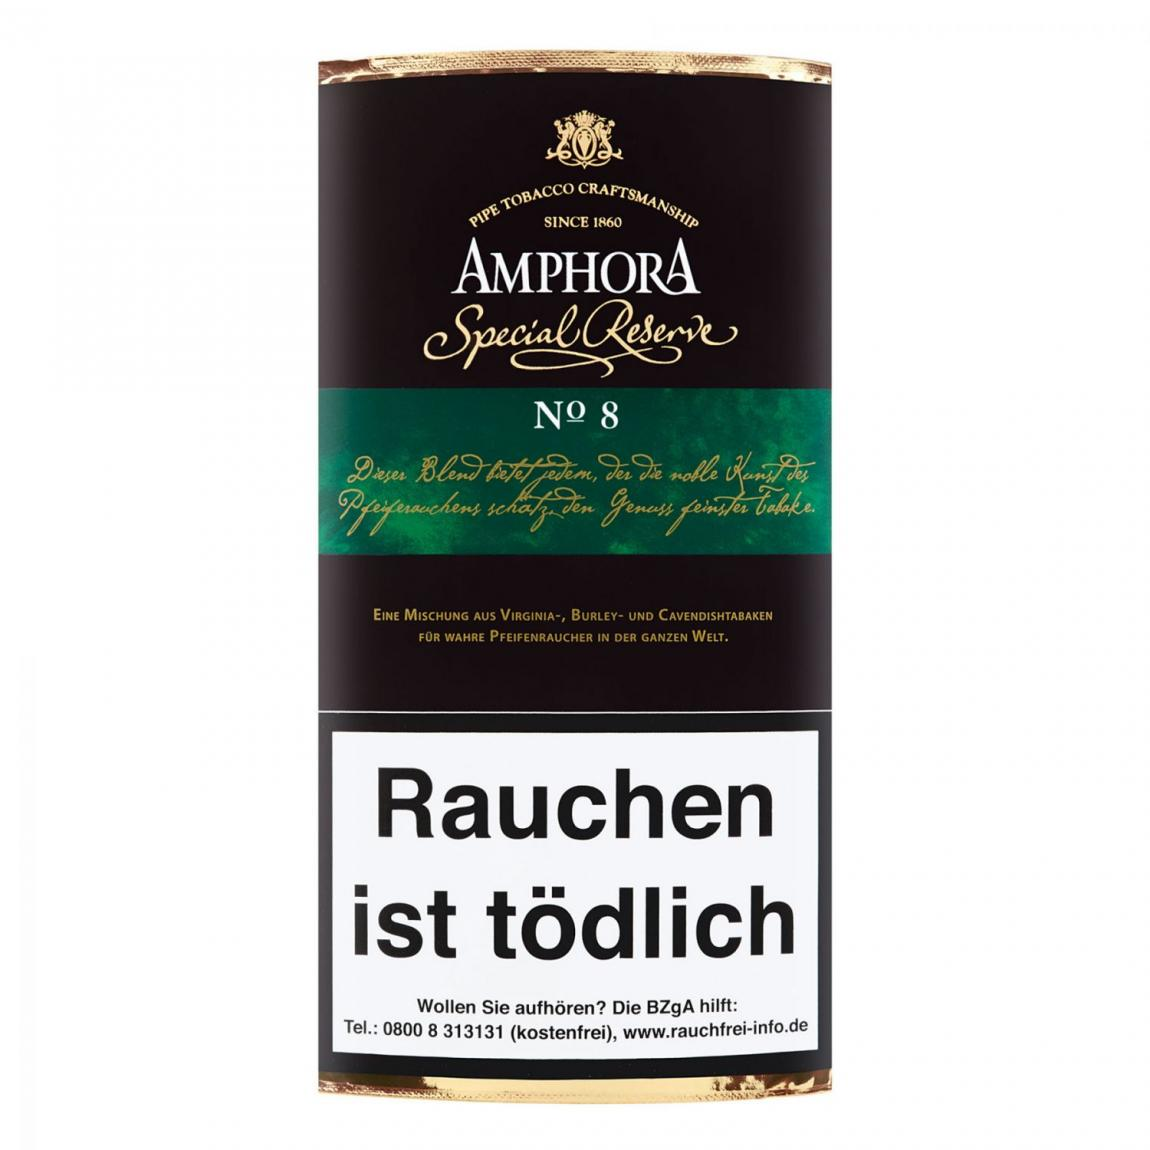 Amphora »Special Reserve No. 8« 50g Pouch